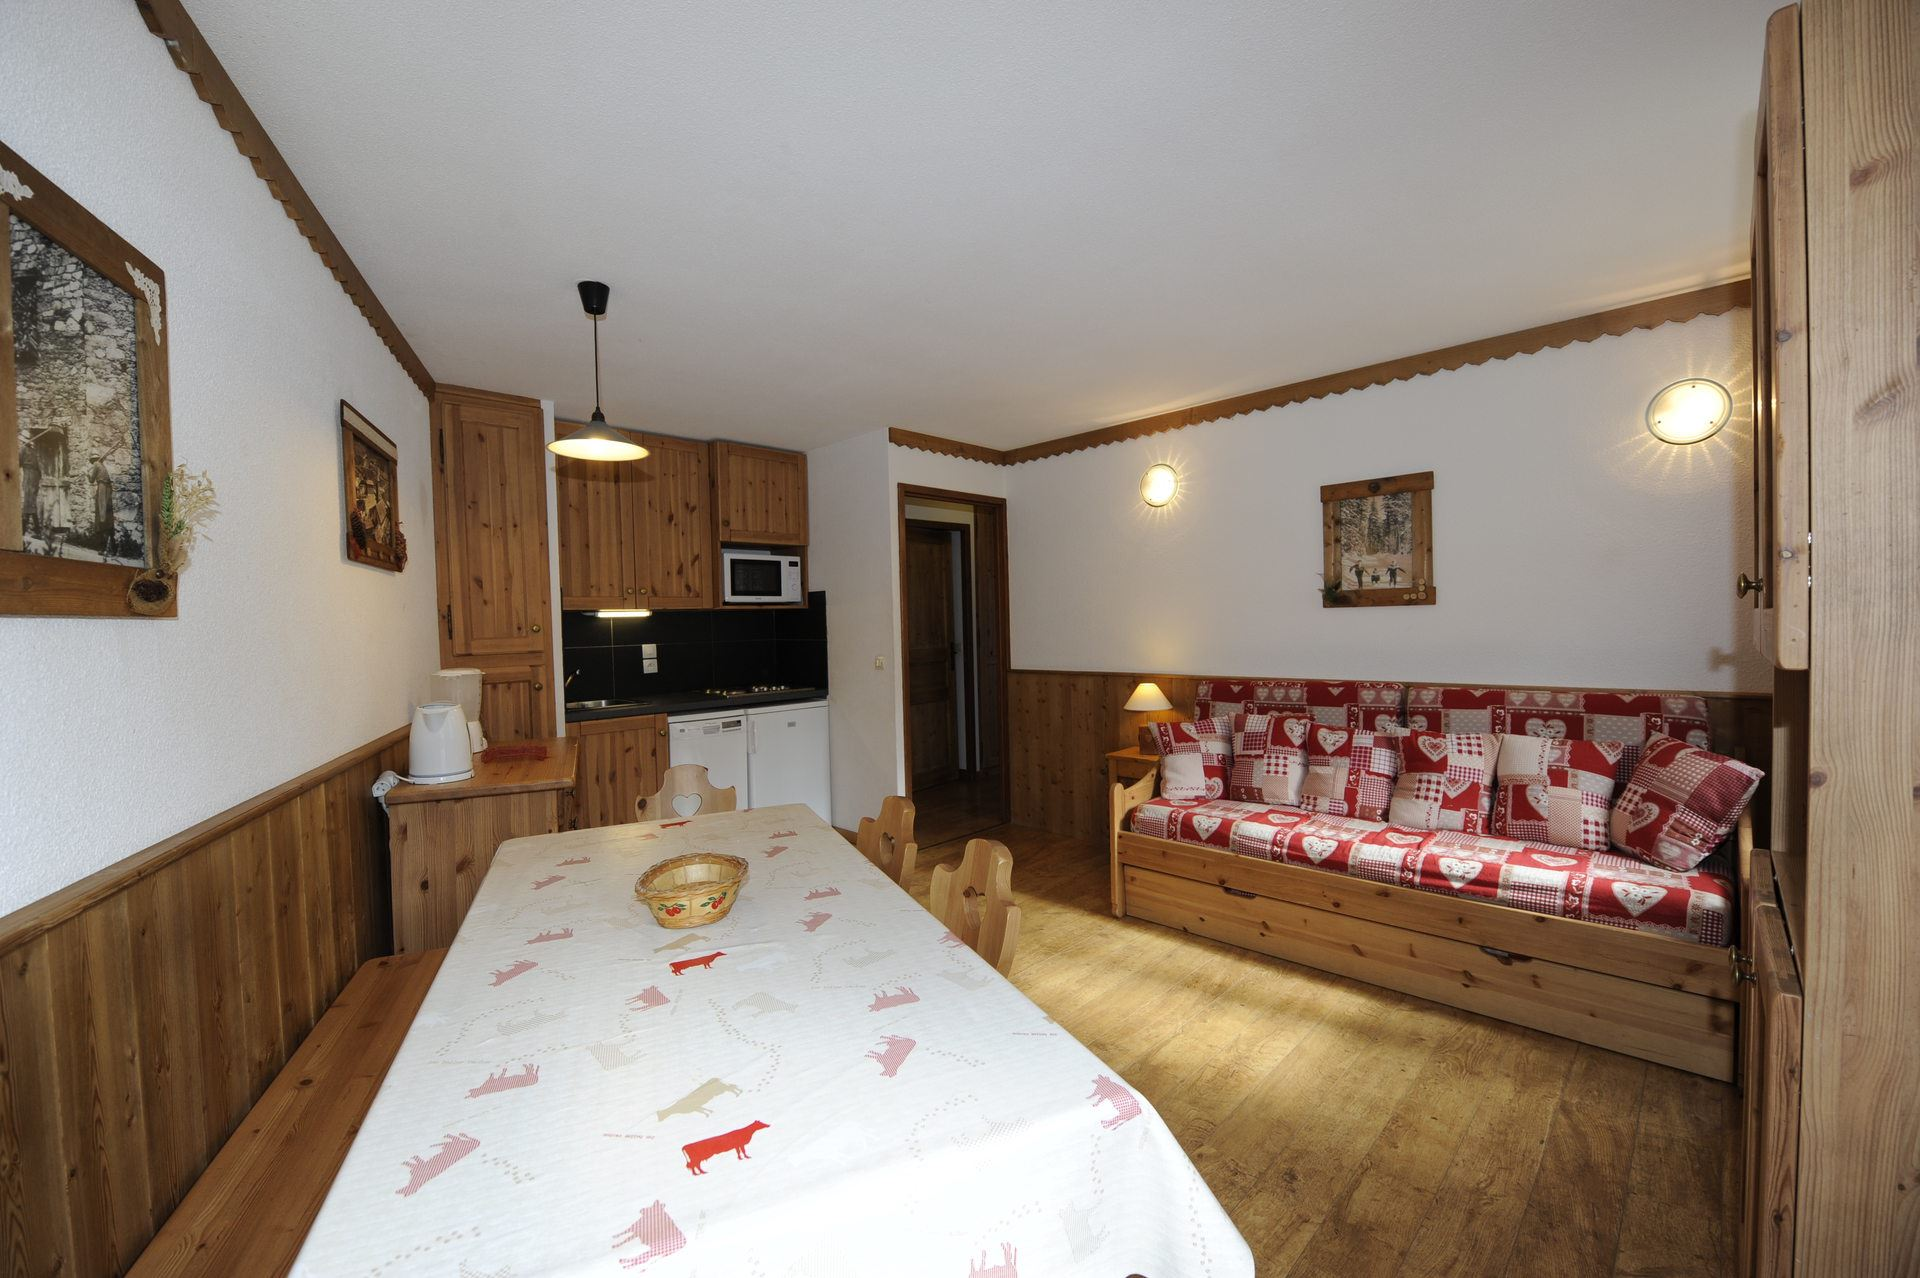 2 Rooms + cabin 6 Pers ski-in ski-out / BALCONS D'OLYMPIE 1072